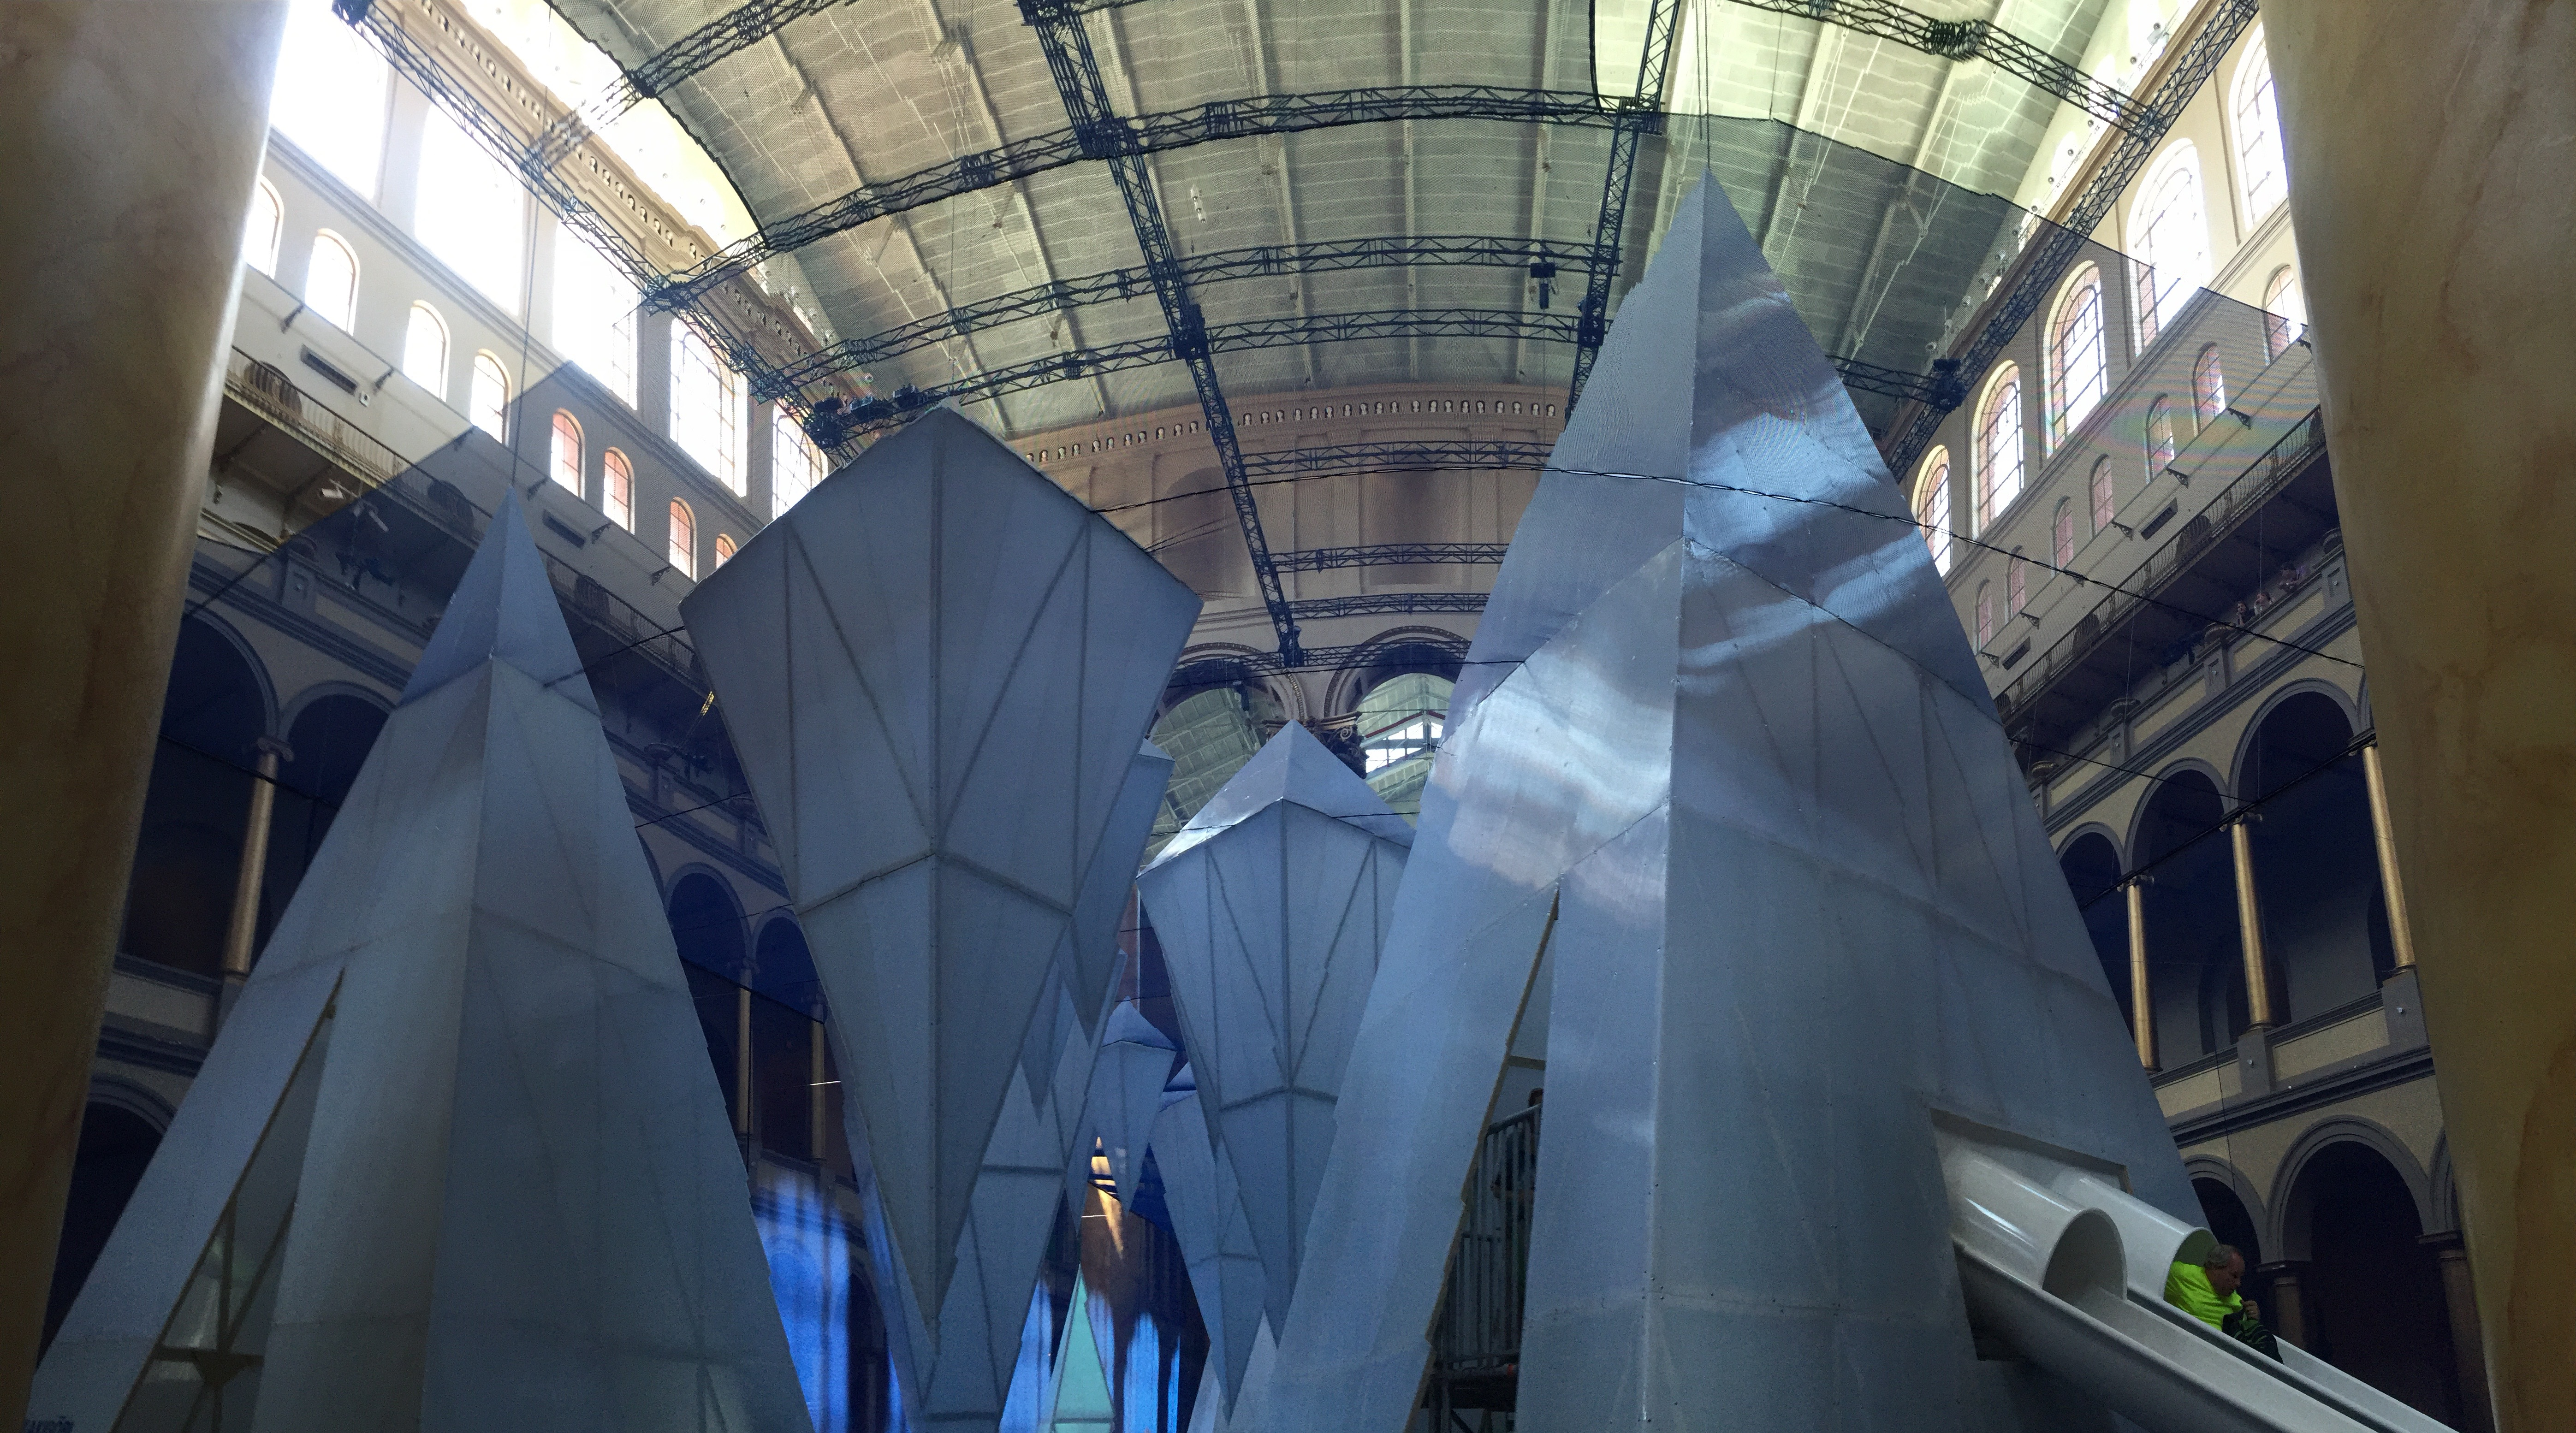 Icebergs at National Building Museum 2